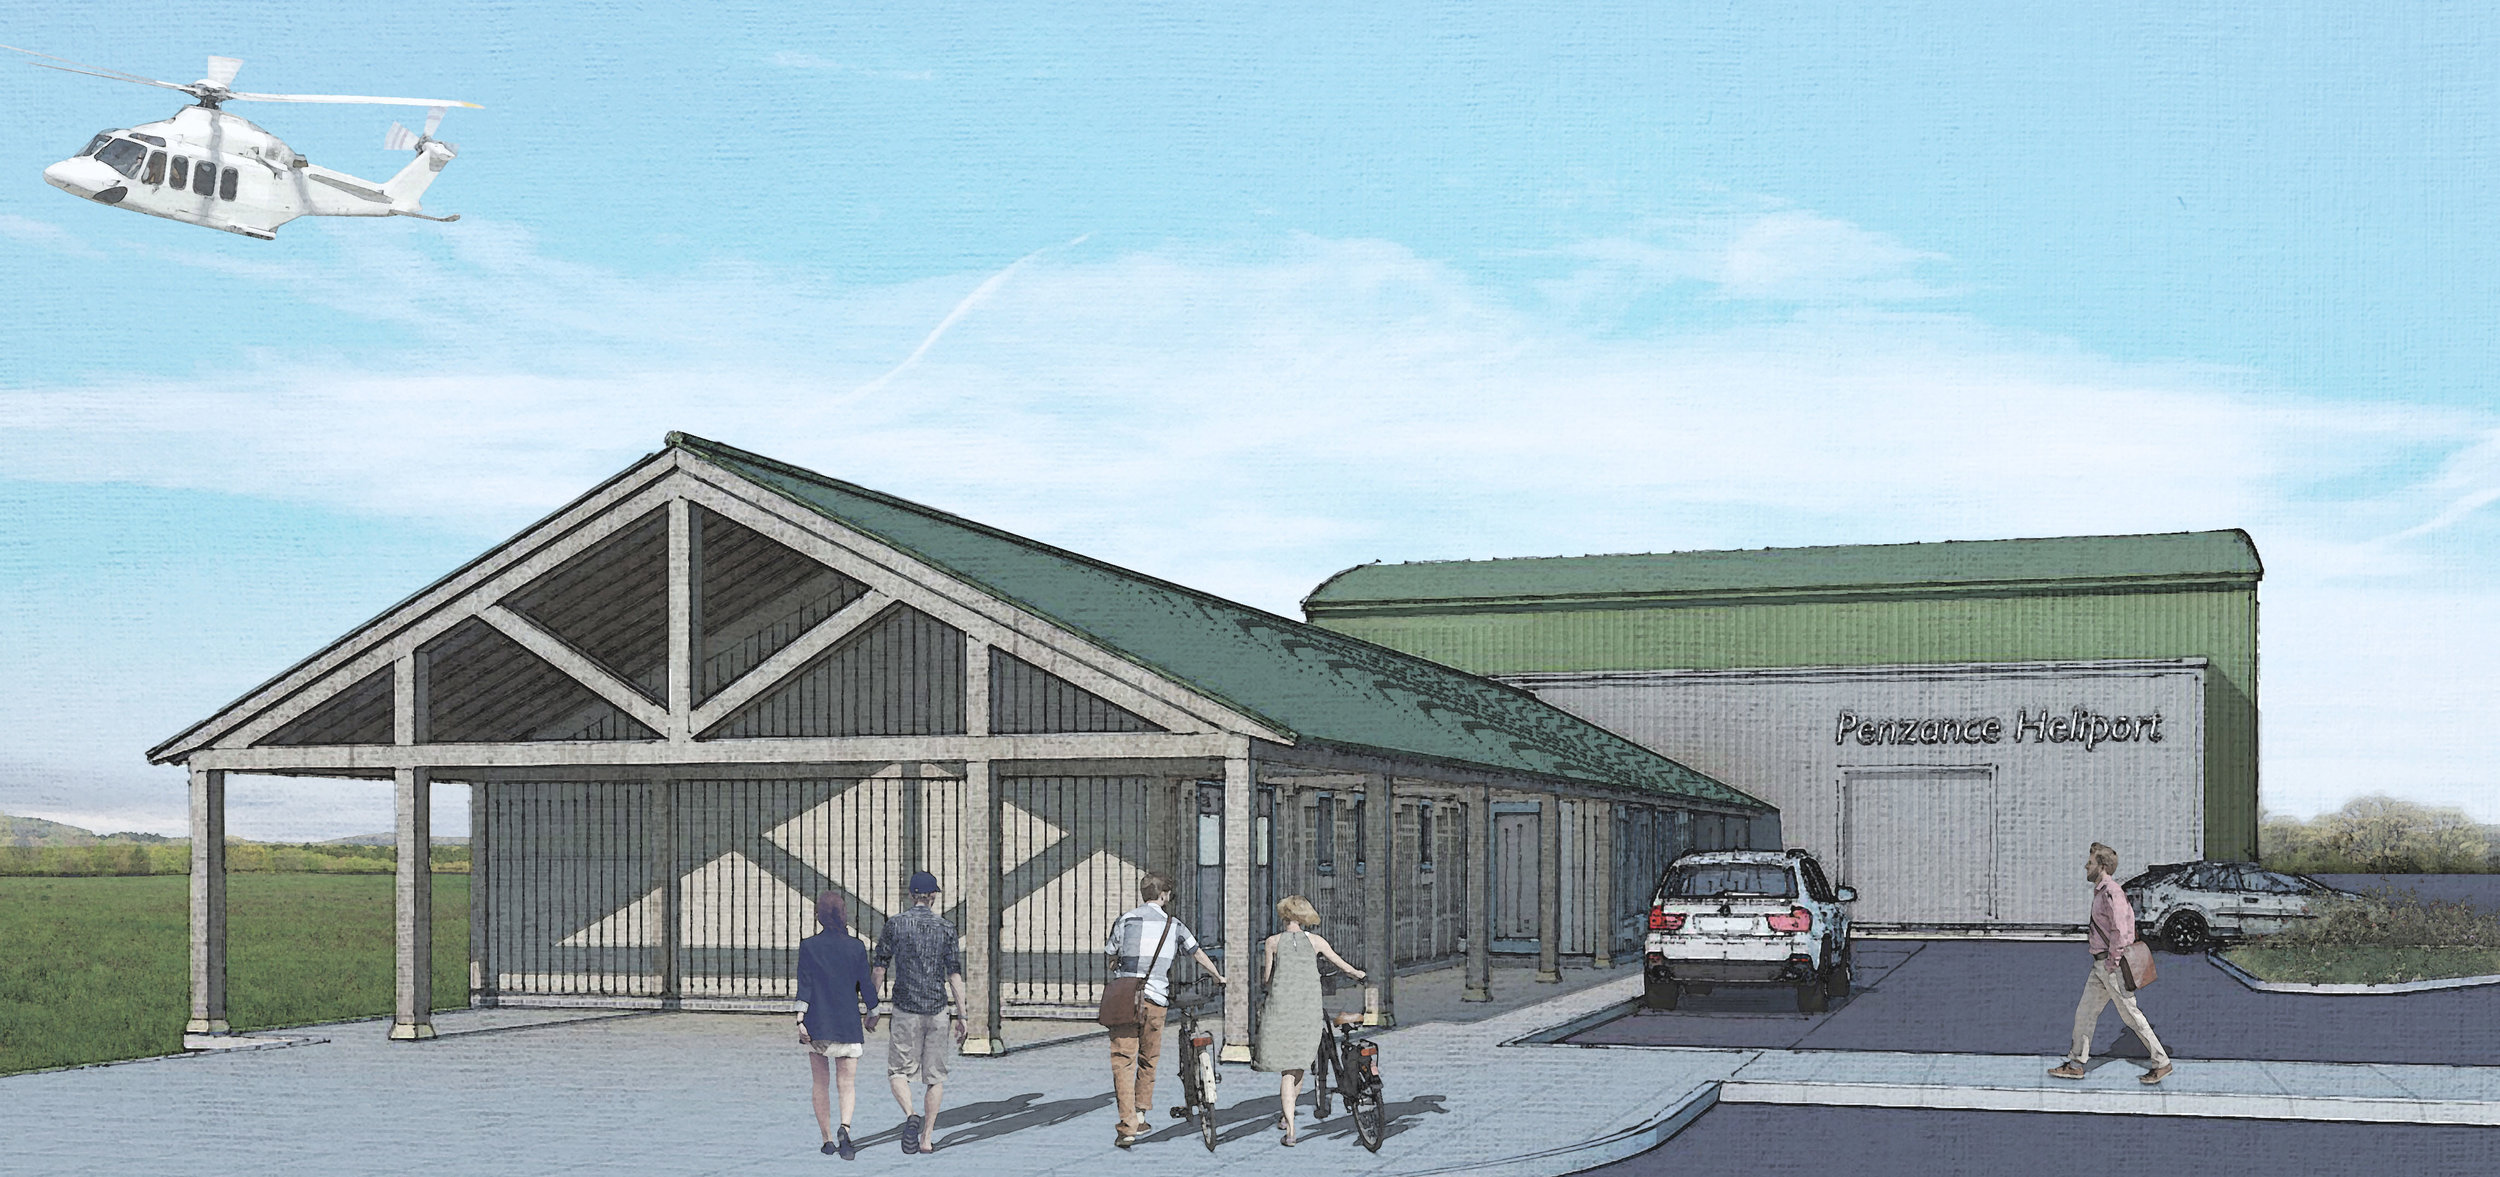 Artist impression of the new Penzance Heliport.